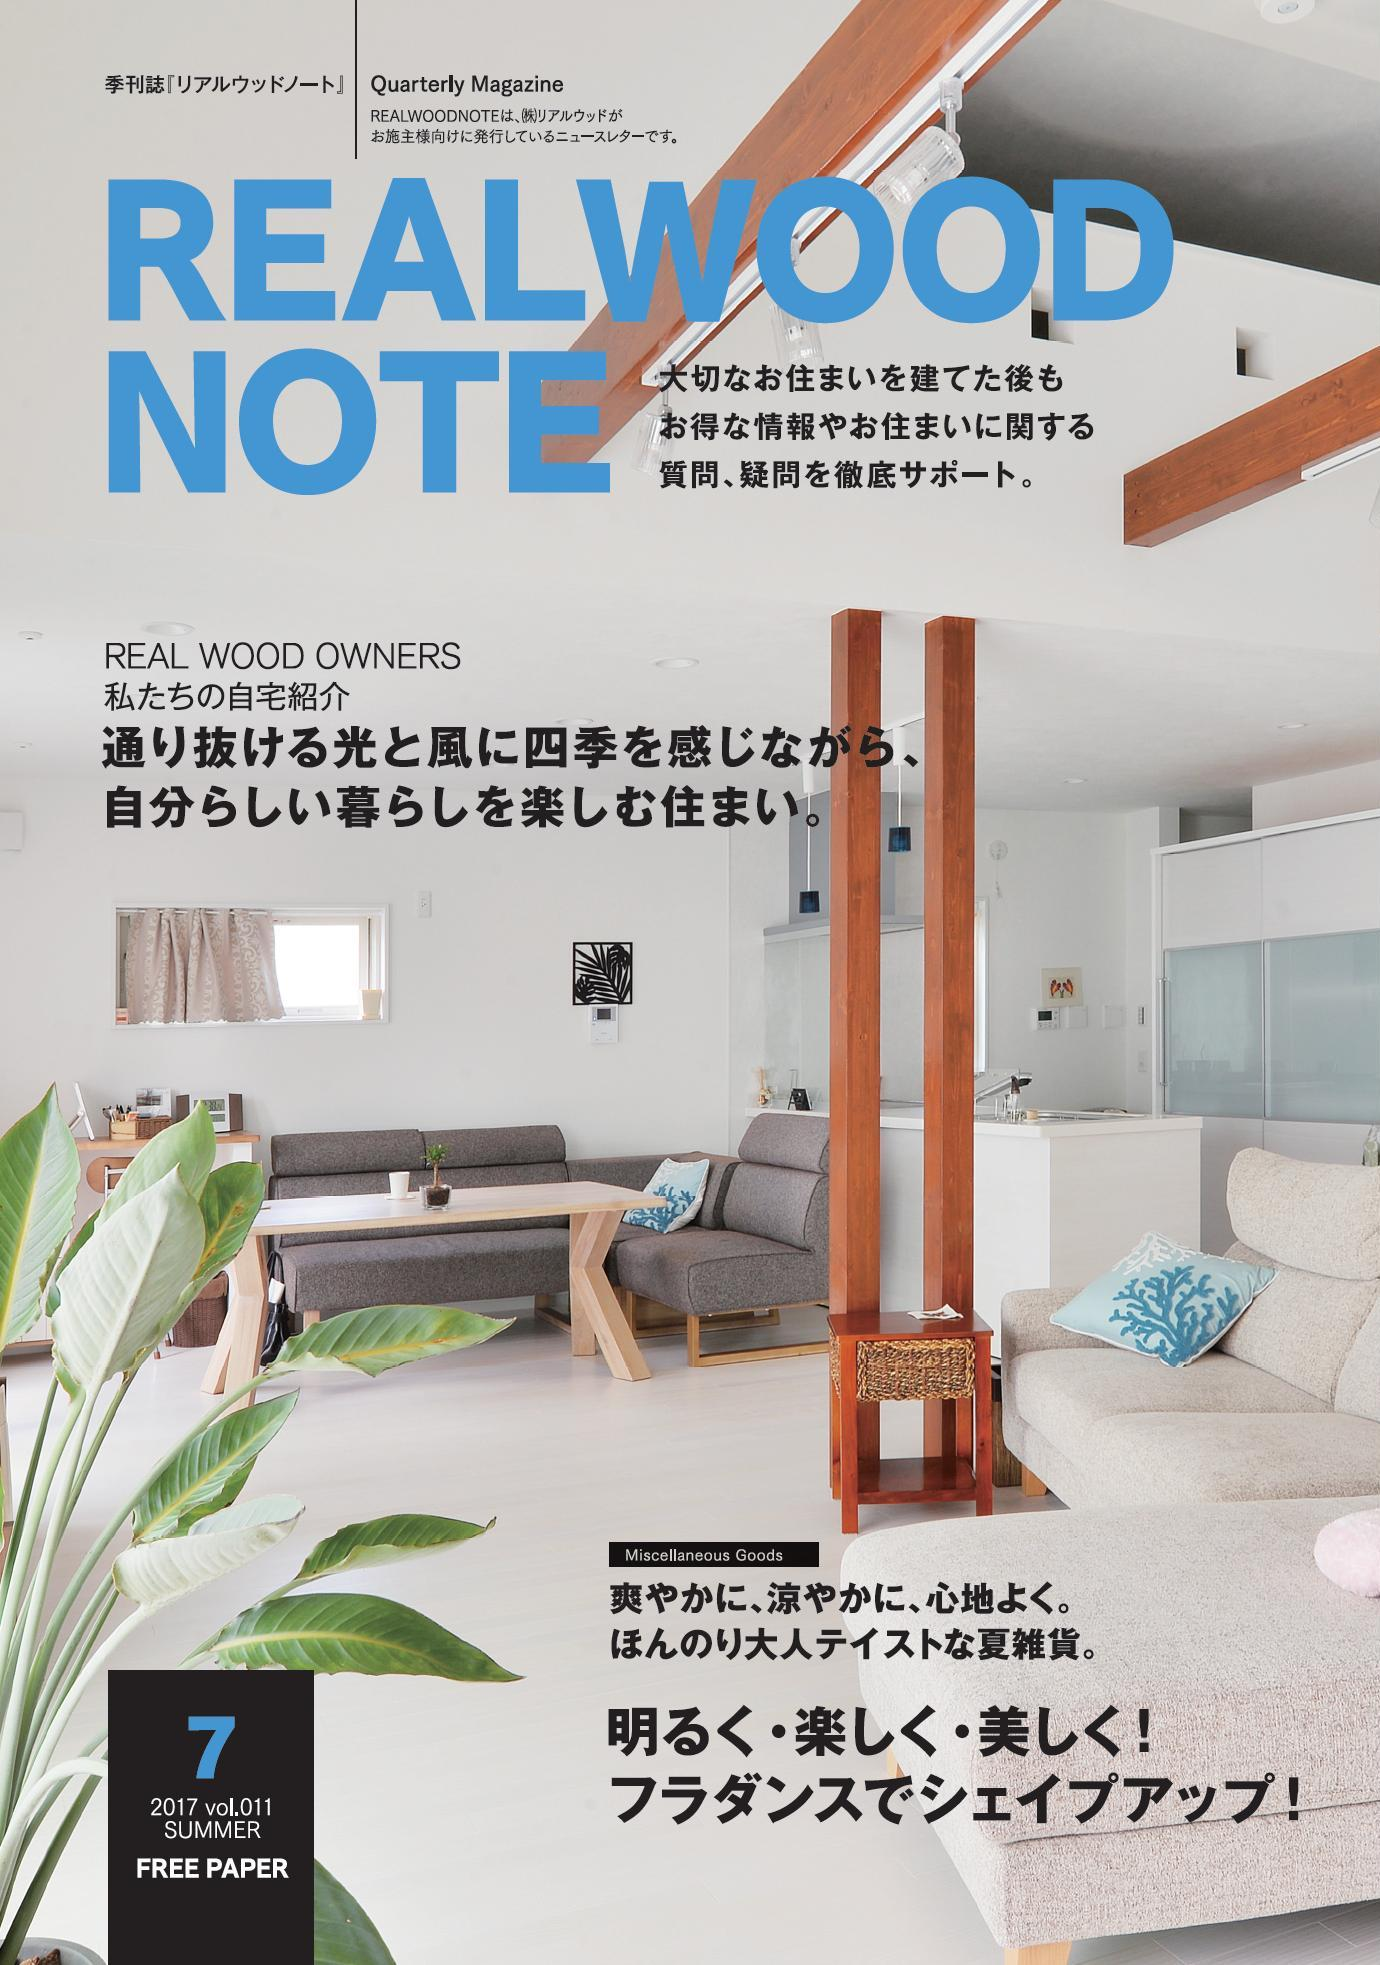 REALWOOD NOTE 2017年 夏季号